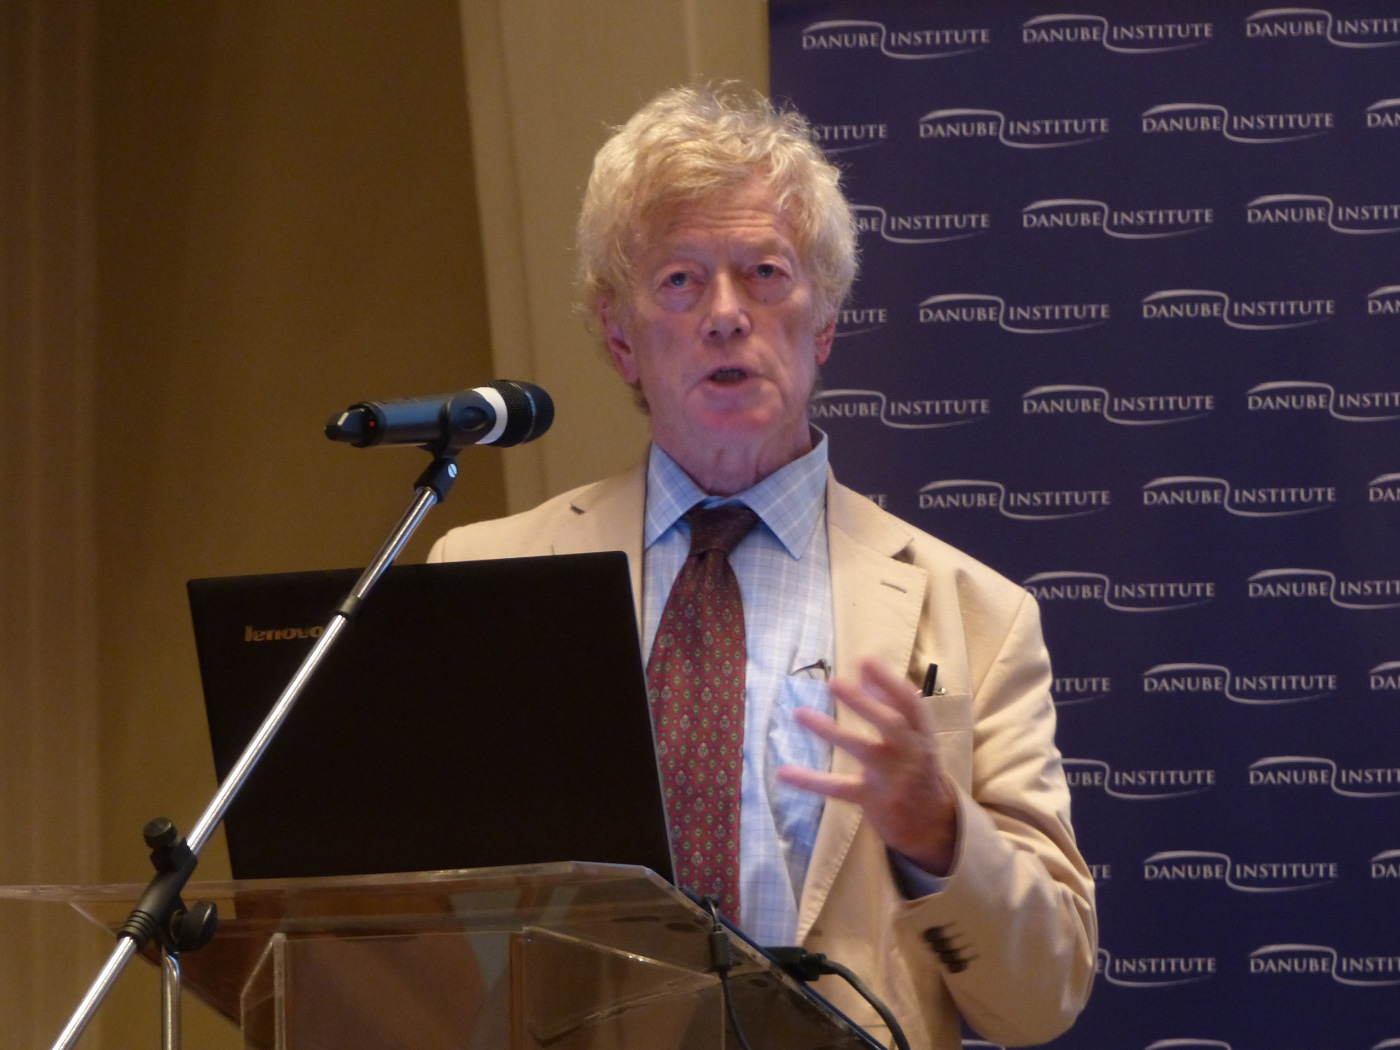 Roger Scruton, an older man with floppy hair, at a lectern